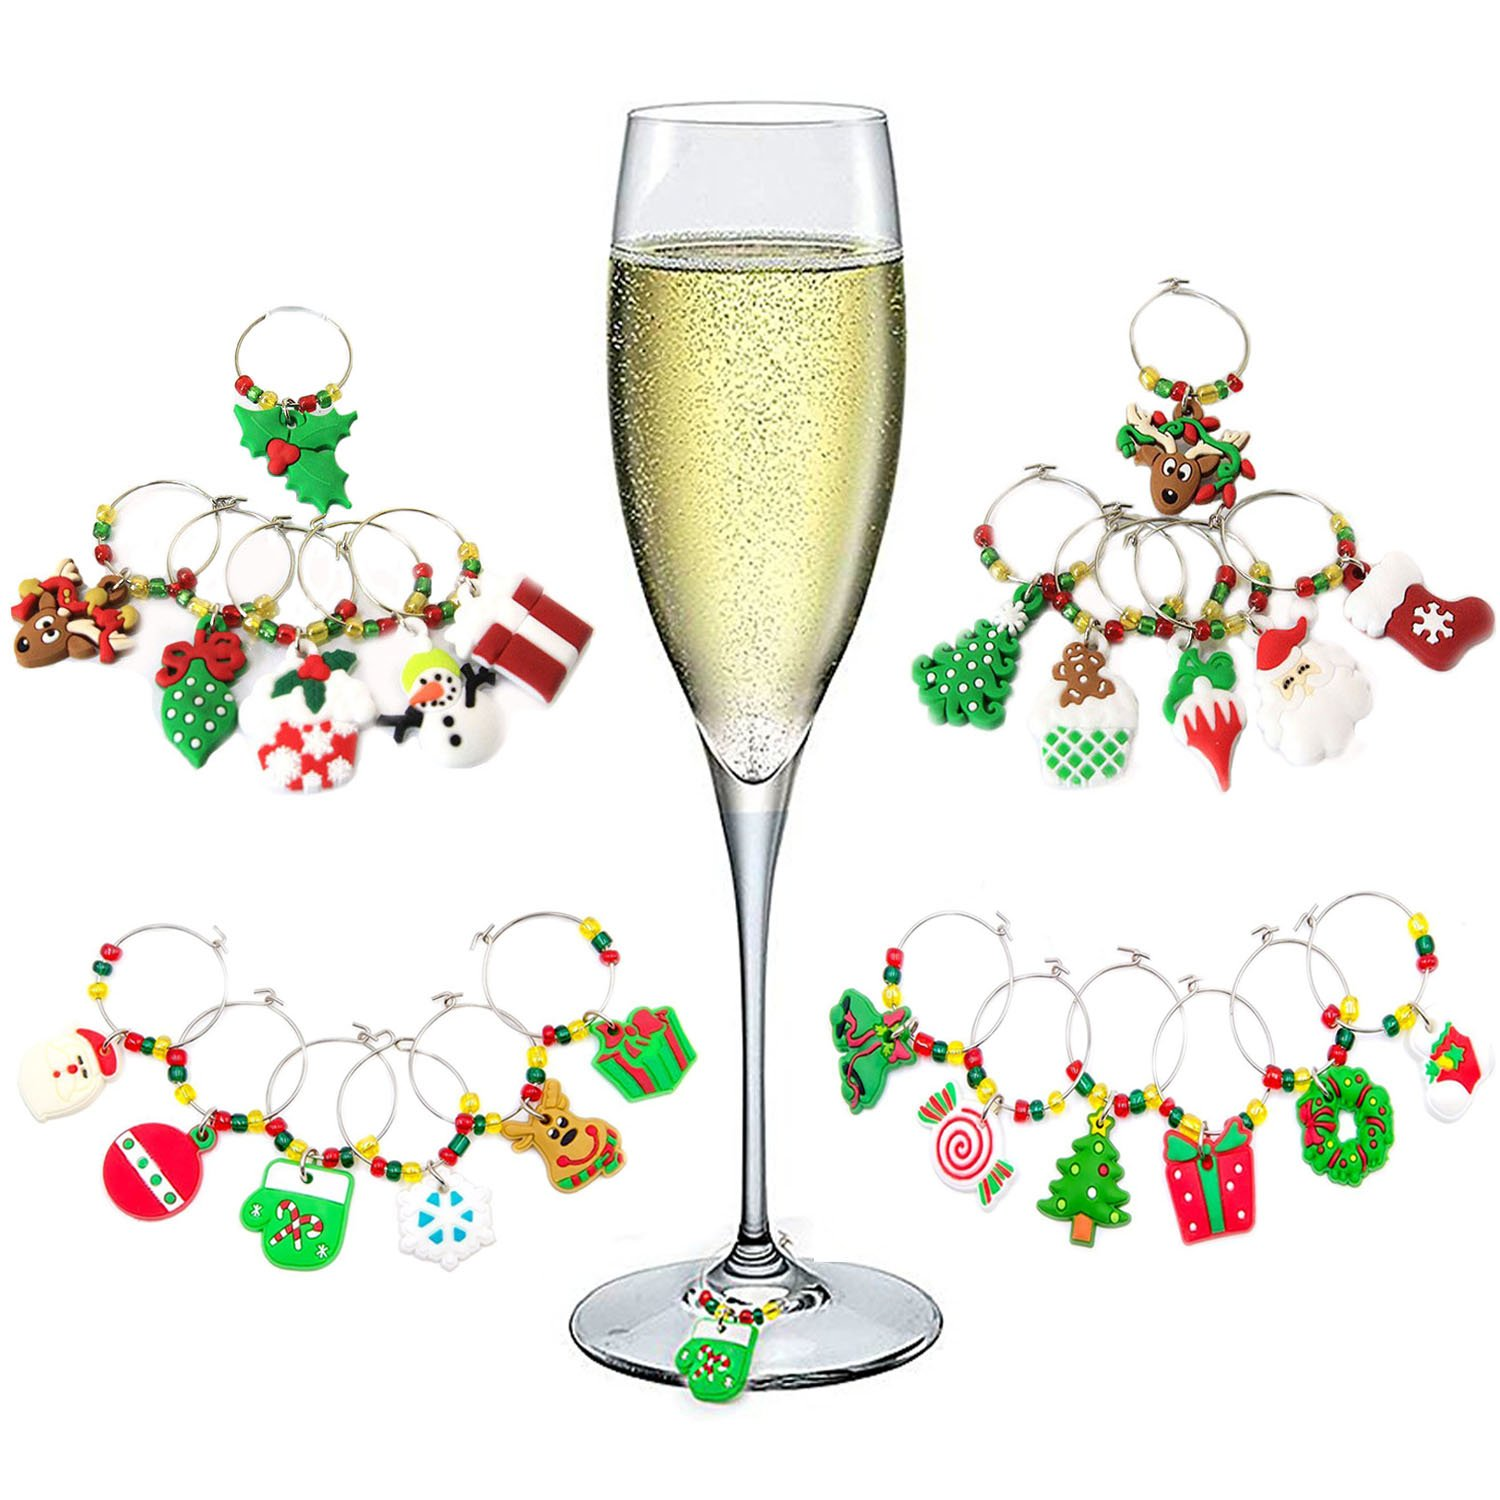 Hraindrop 24-Pieces Wine Glass Charms - Christmas Themed Wine Glass Markers, Wine Glass Tags, Drink Markers, Wine Favors, Assorted Colors by Hraindrop